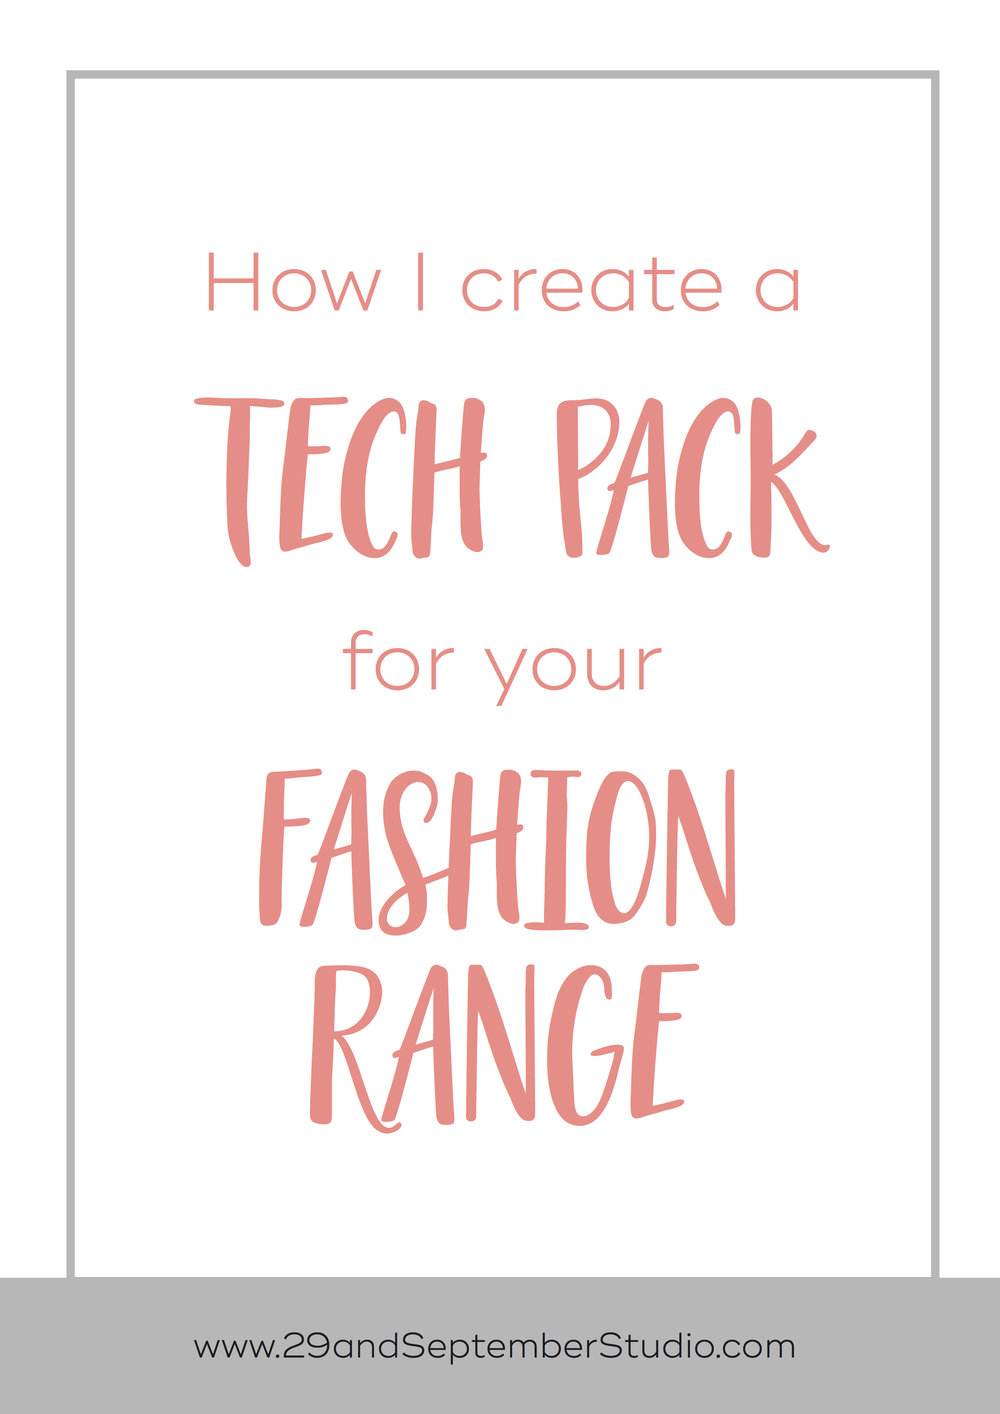 How to create a tech pack for your fashion designs